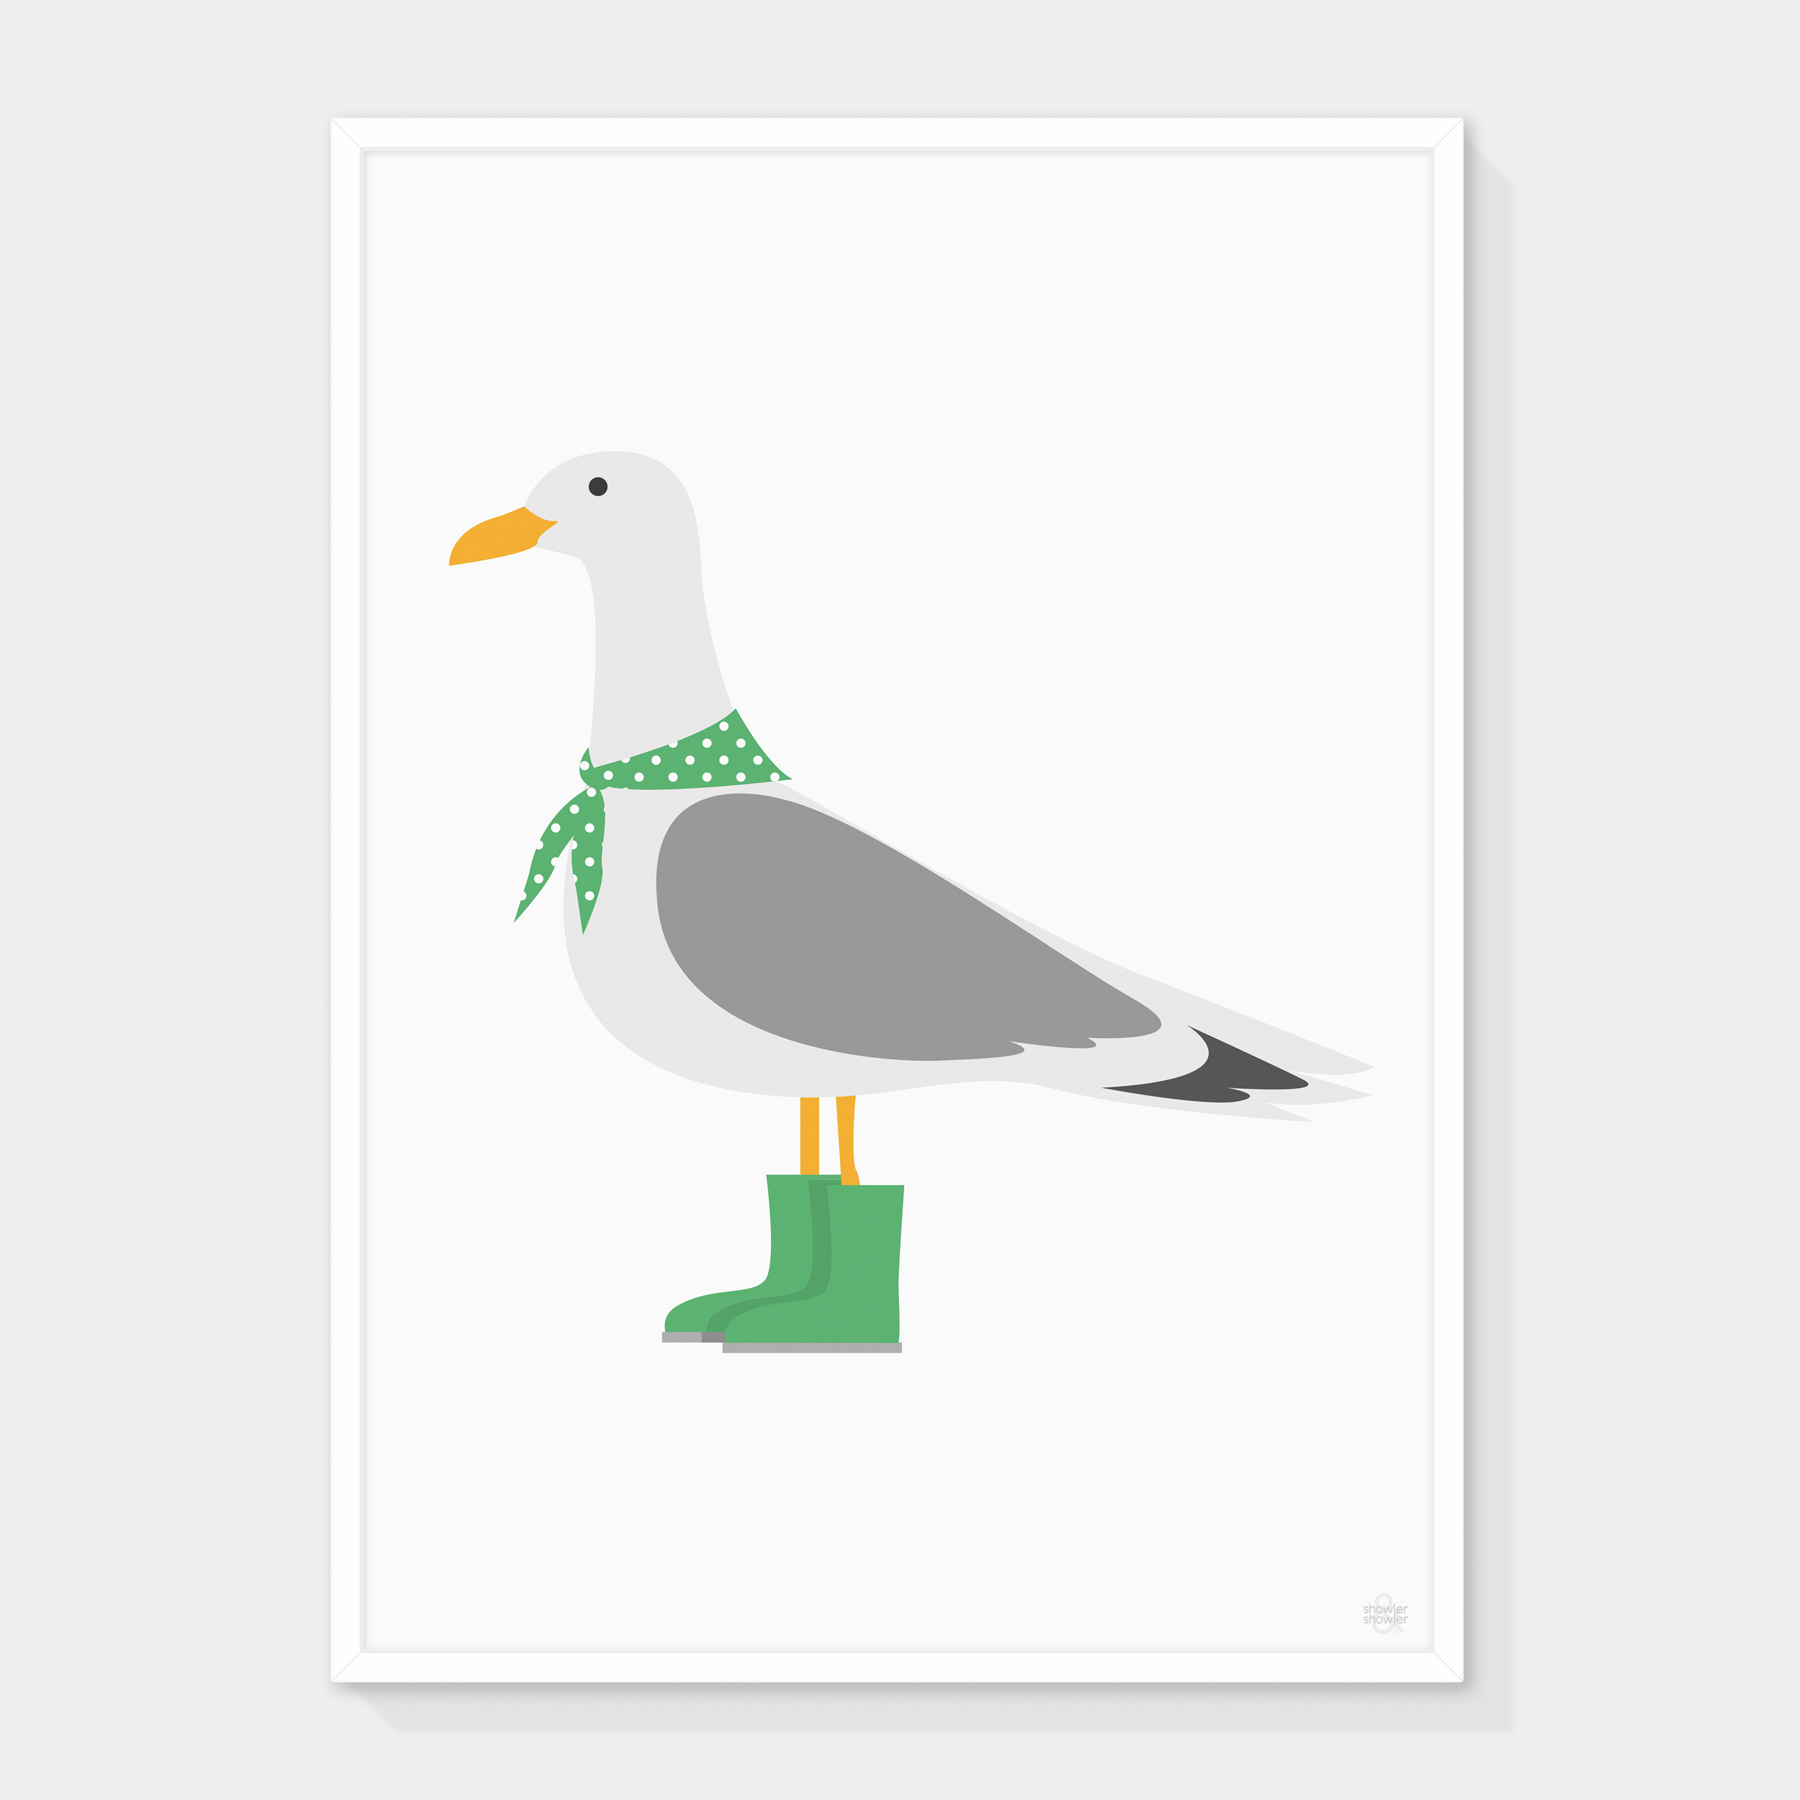 Seagull-GREEN-Framed.jpg